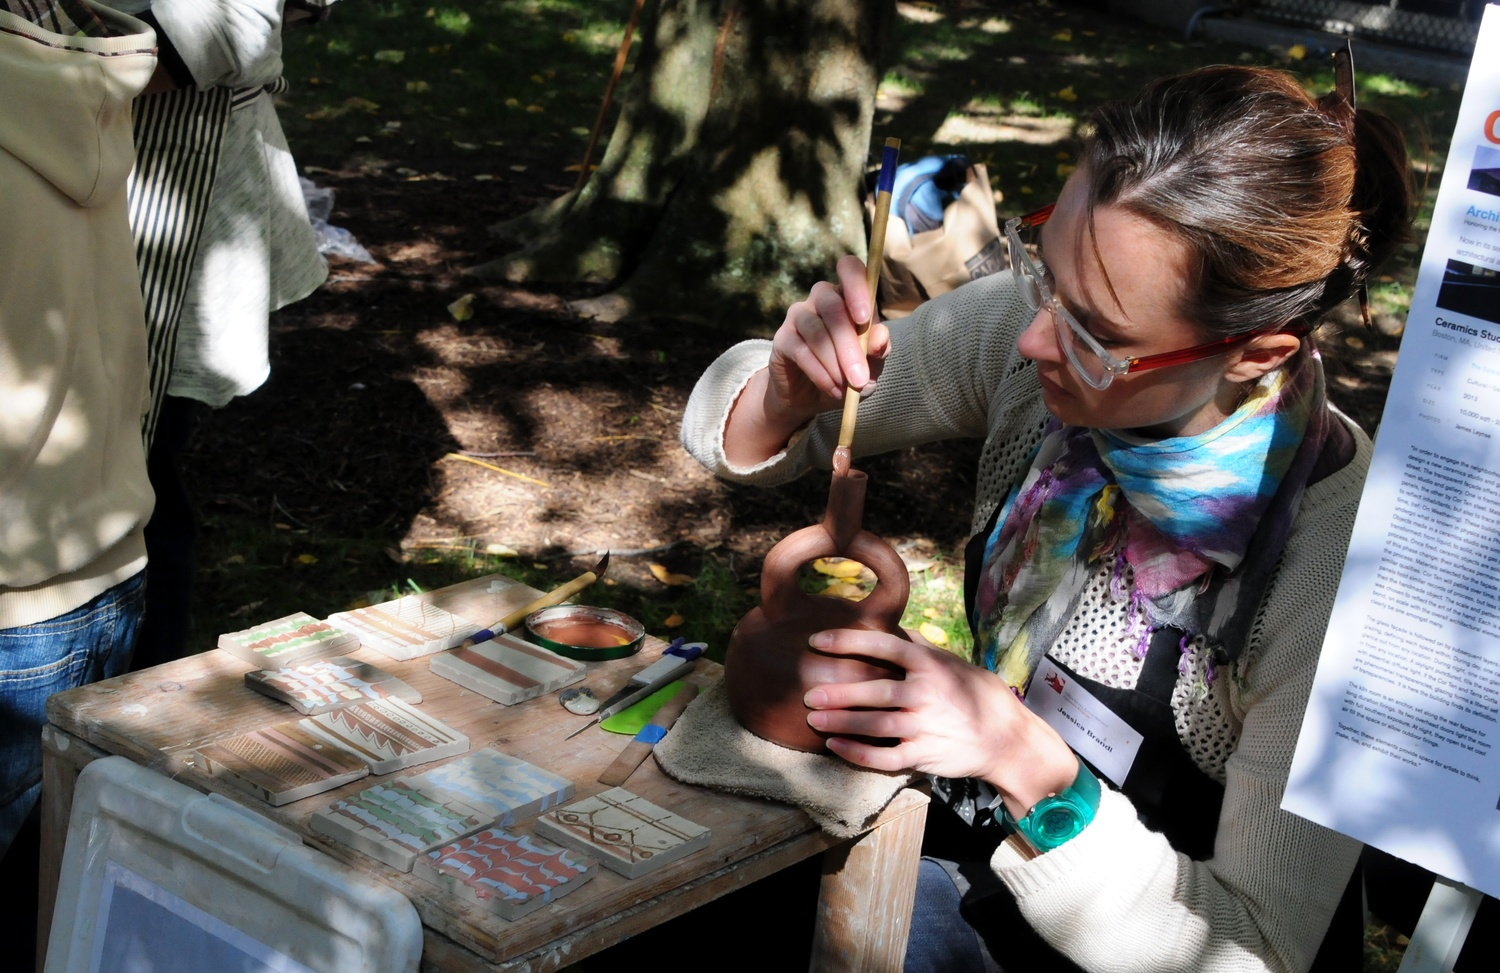 OFA Artist-in-Residence Jessica A. Brandl touches up a clay vessel at the archaeology fair was held by the Peabody Museum and the Semitic Museum on Oct. 5.